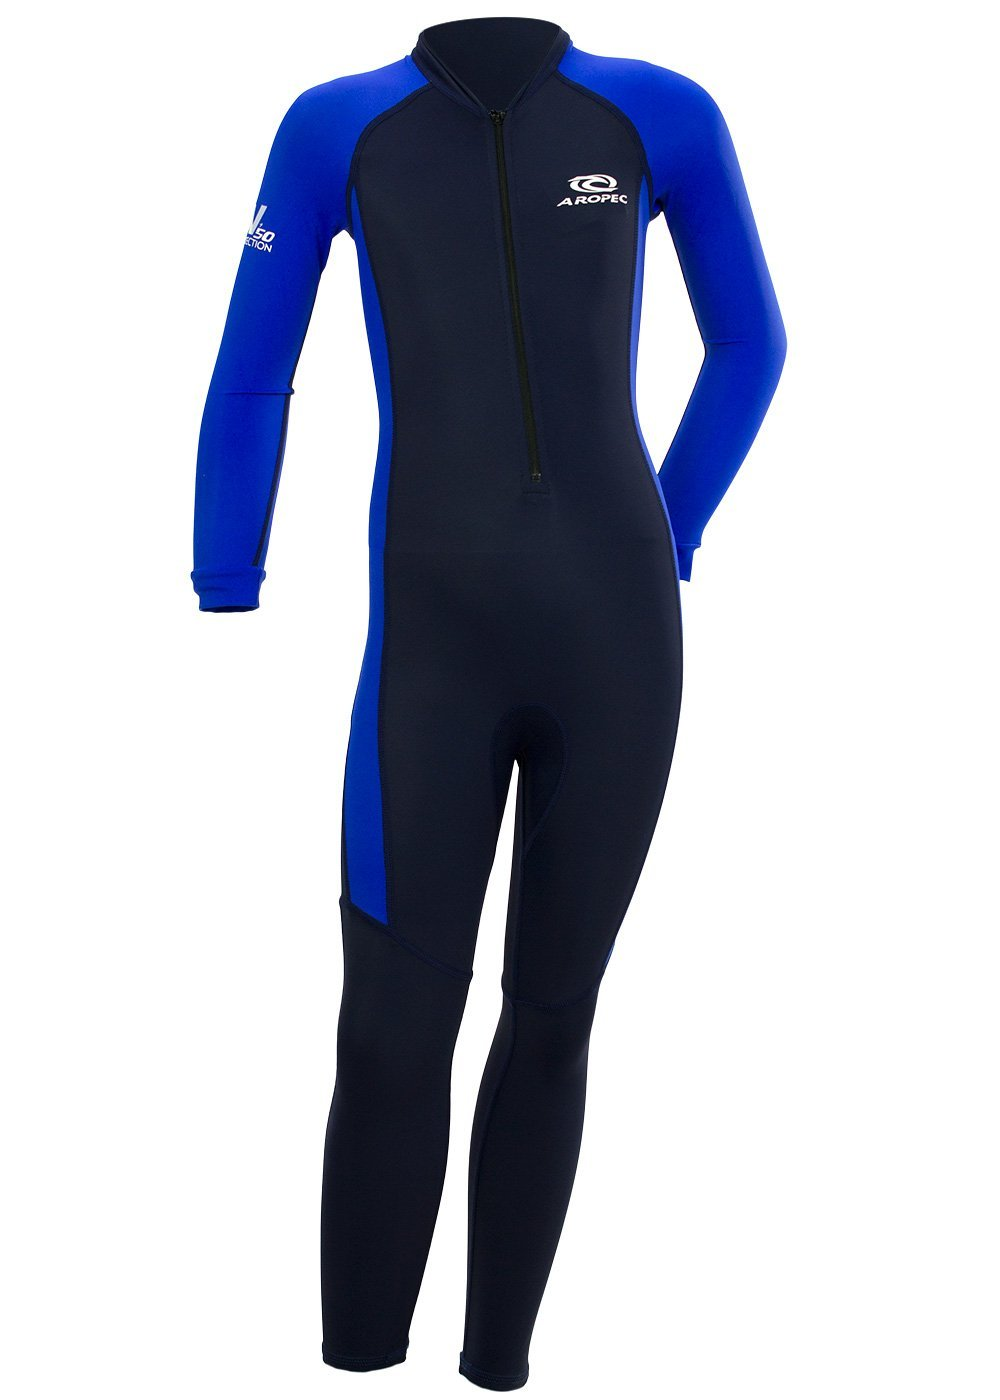 Aropec Youth Lycra Suit